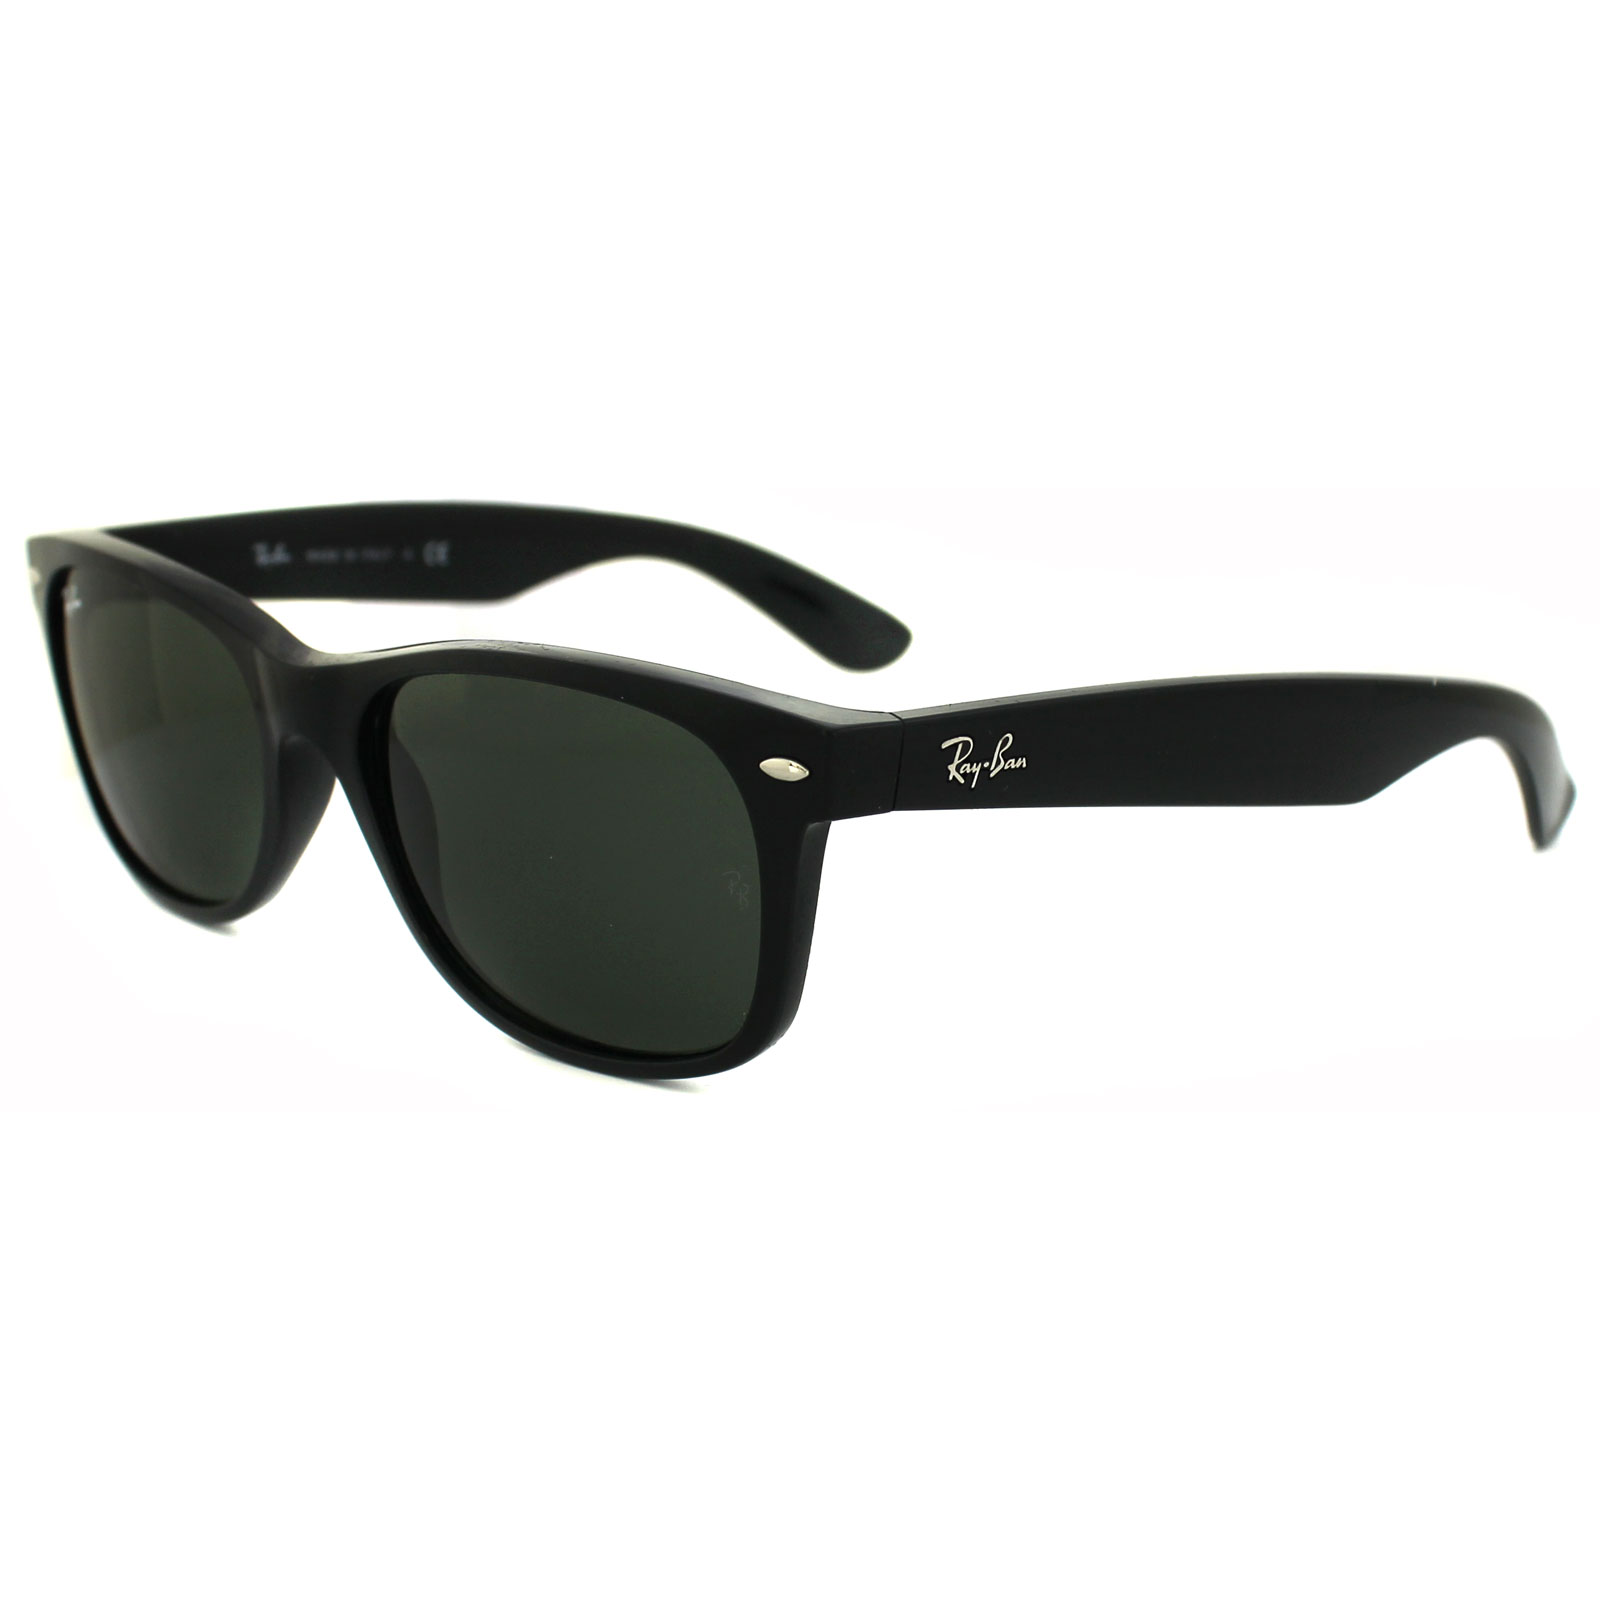 a2288acc87 Cheap Ray-Ban New Wayfarer 2132 Sunglasses - Discounted Sunglasses